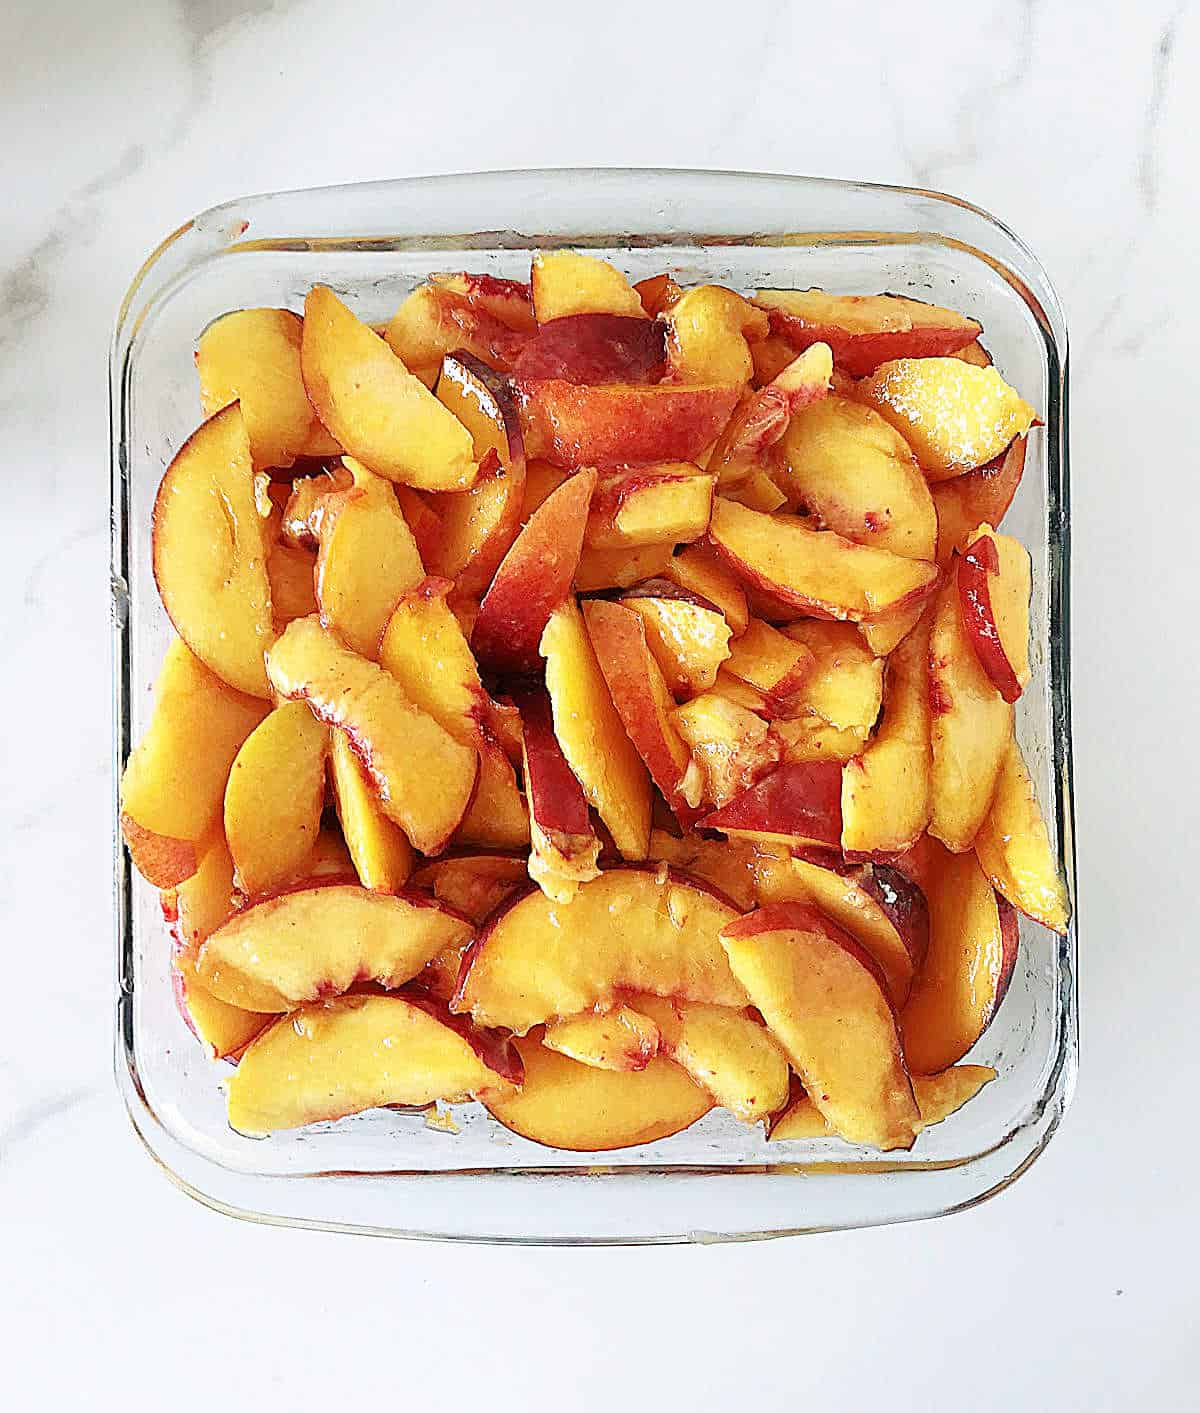 Square glass dish with sliced peaches on marble counter